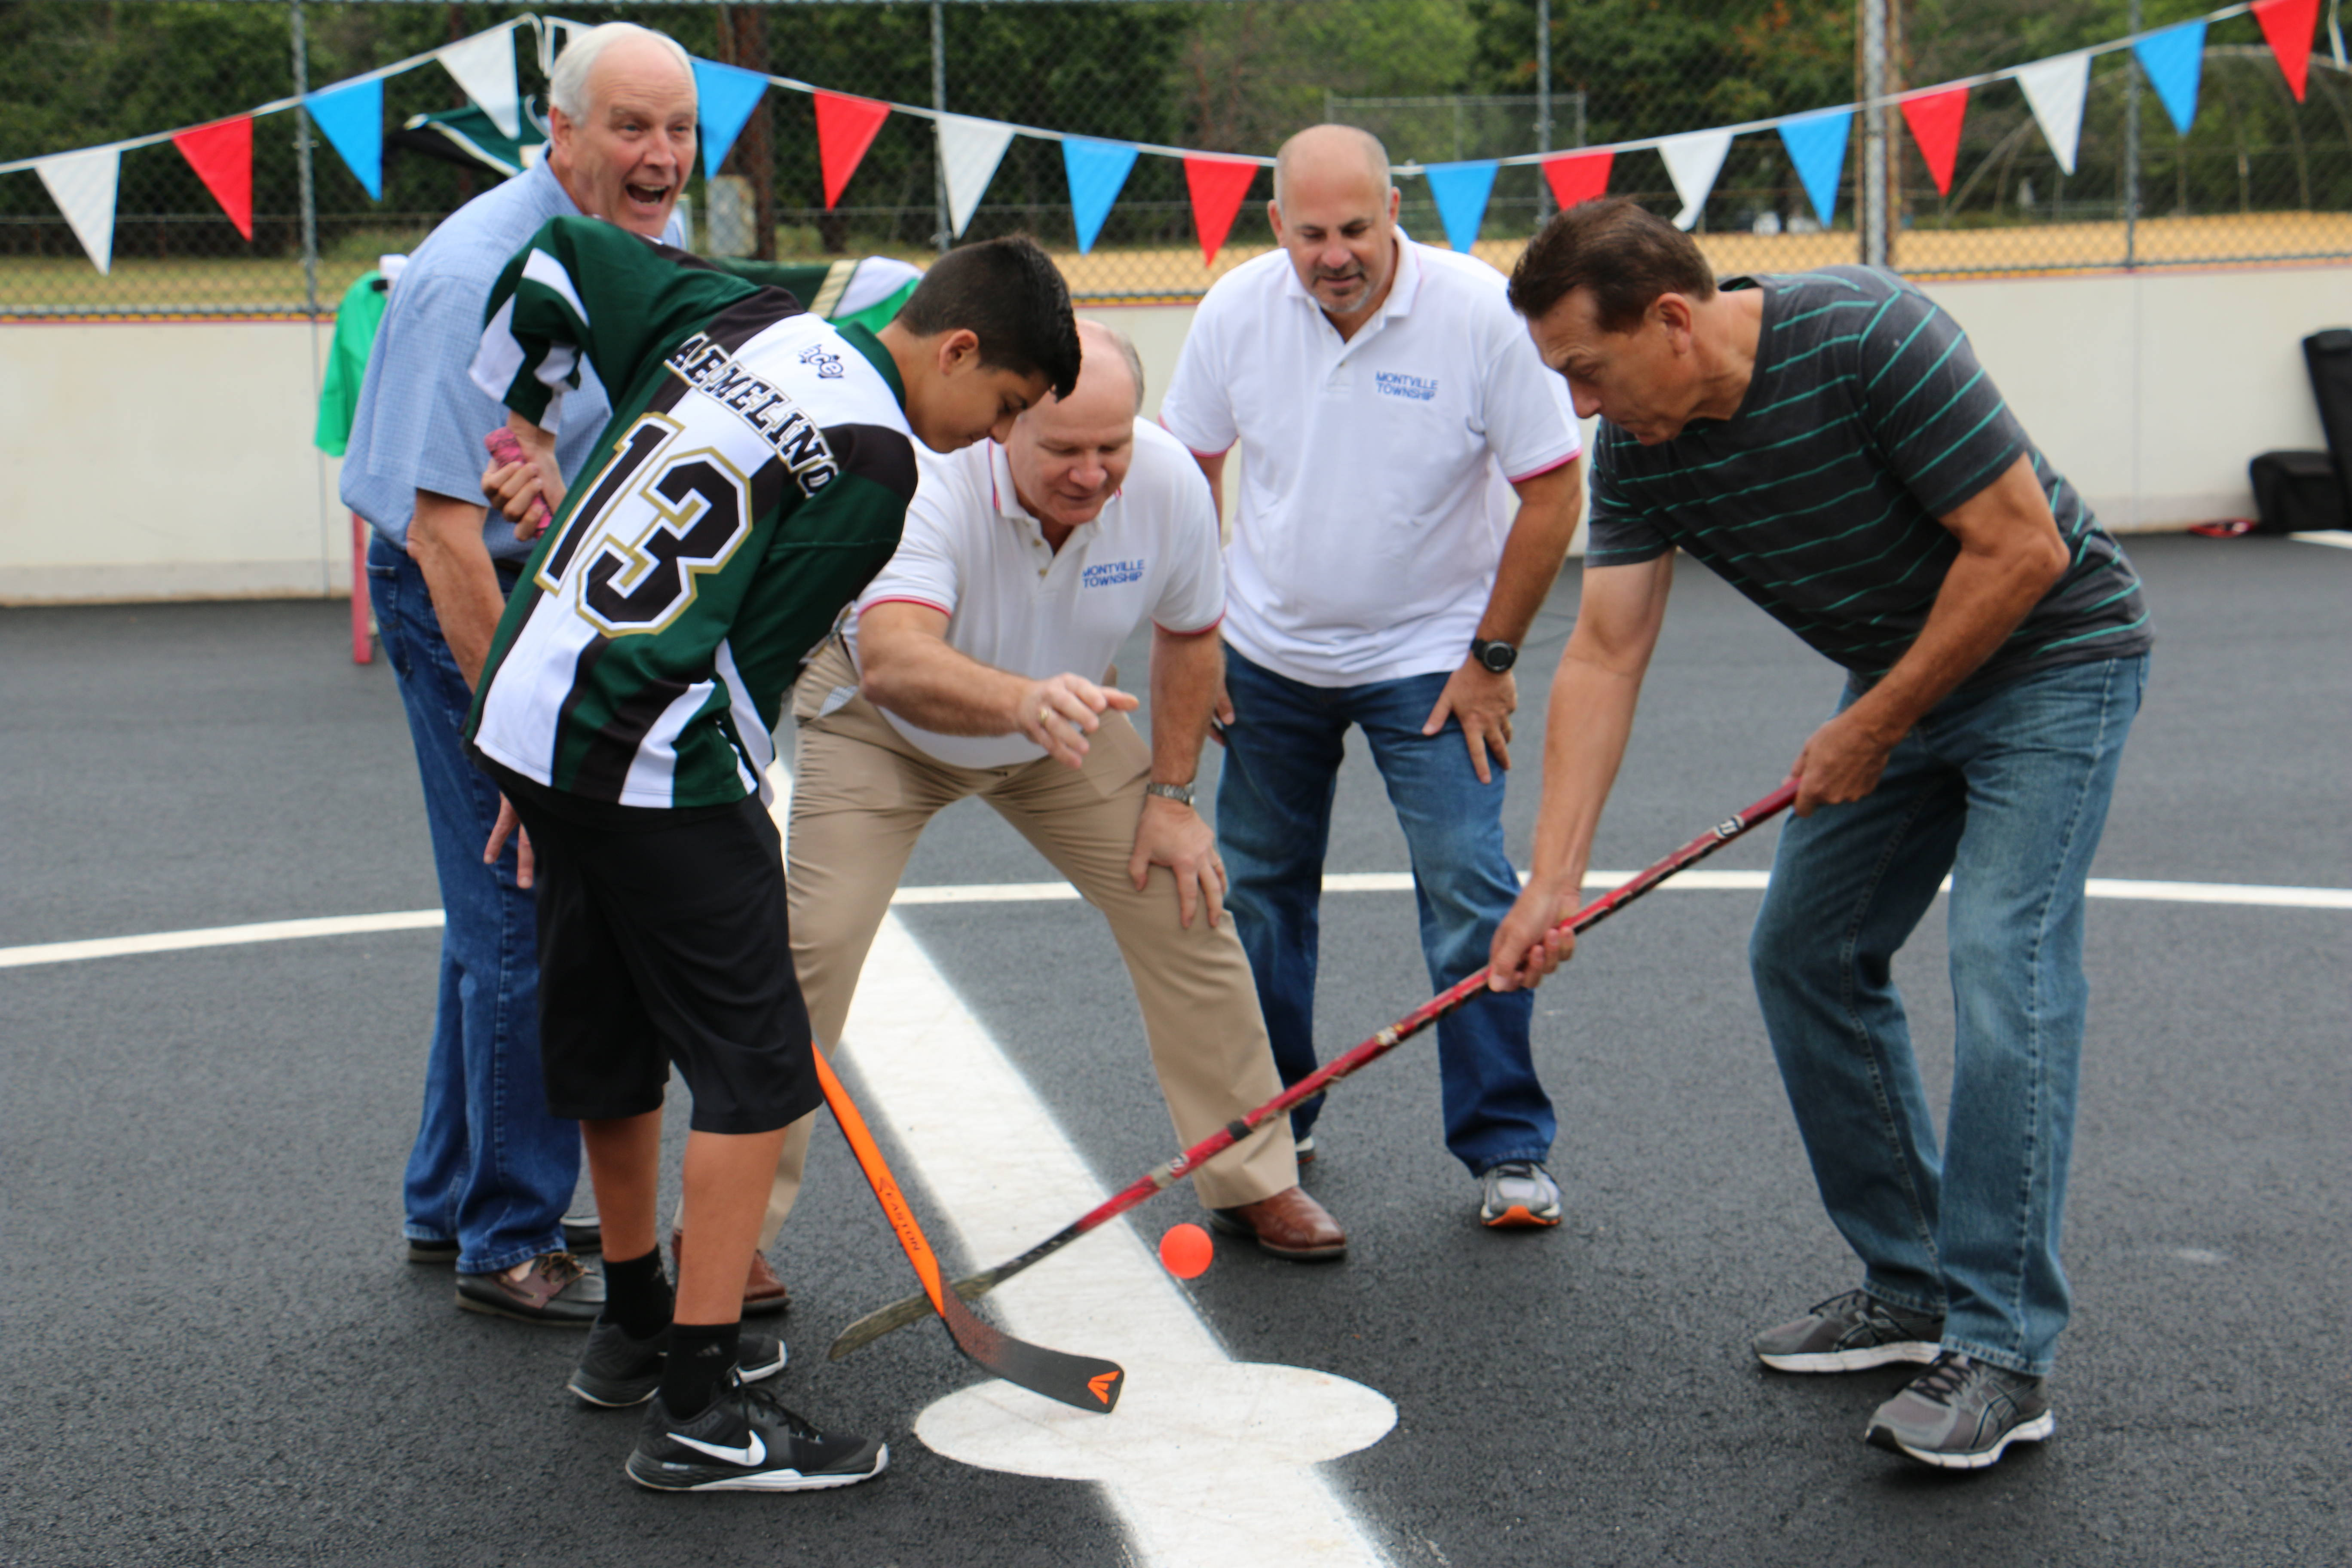 Roller skating rink kendall park nj -  And Township Committee Member Scott Gallopo Referee The Ceremonial Face Off Between Chris Armelino And Gerry Logan At Montville S Roller Hockey Rink